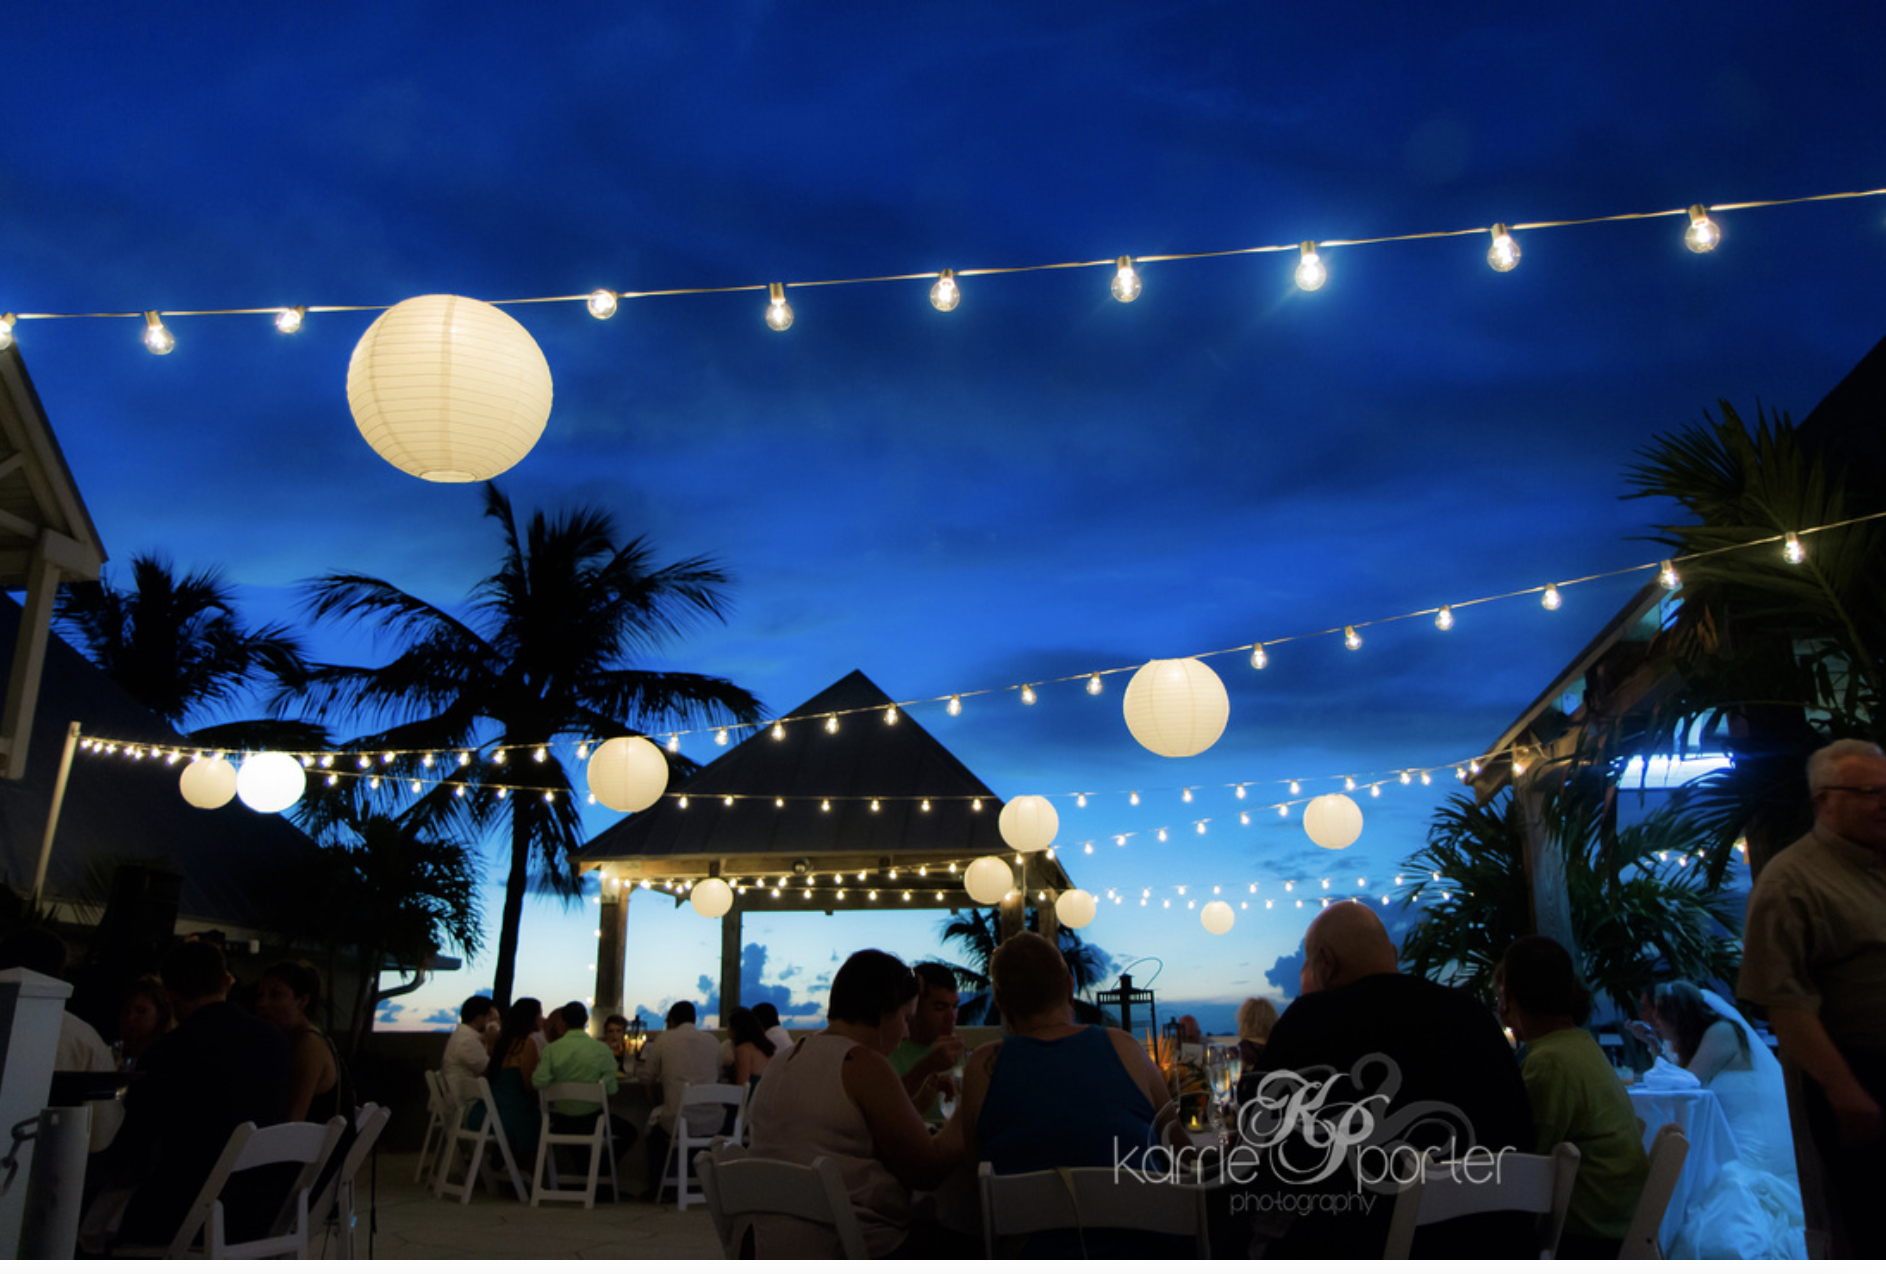 Nighttime Wedding Photo At Margaritaville in Key West.png